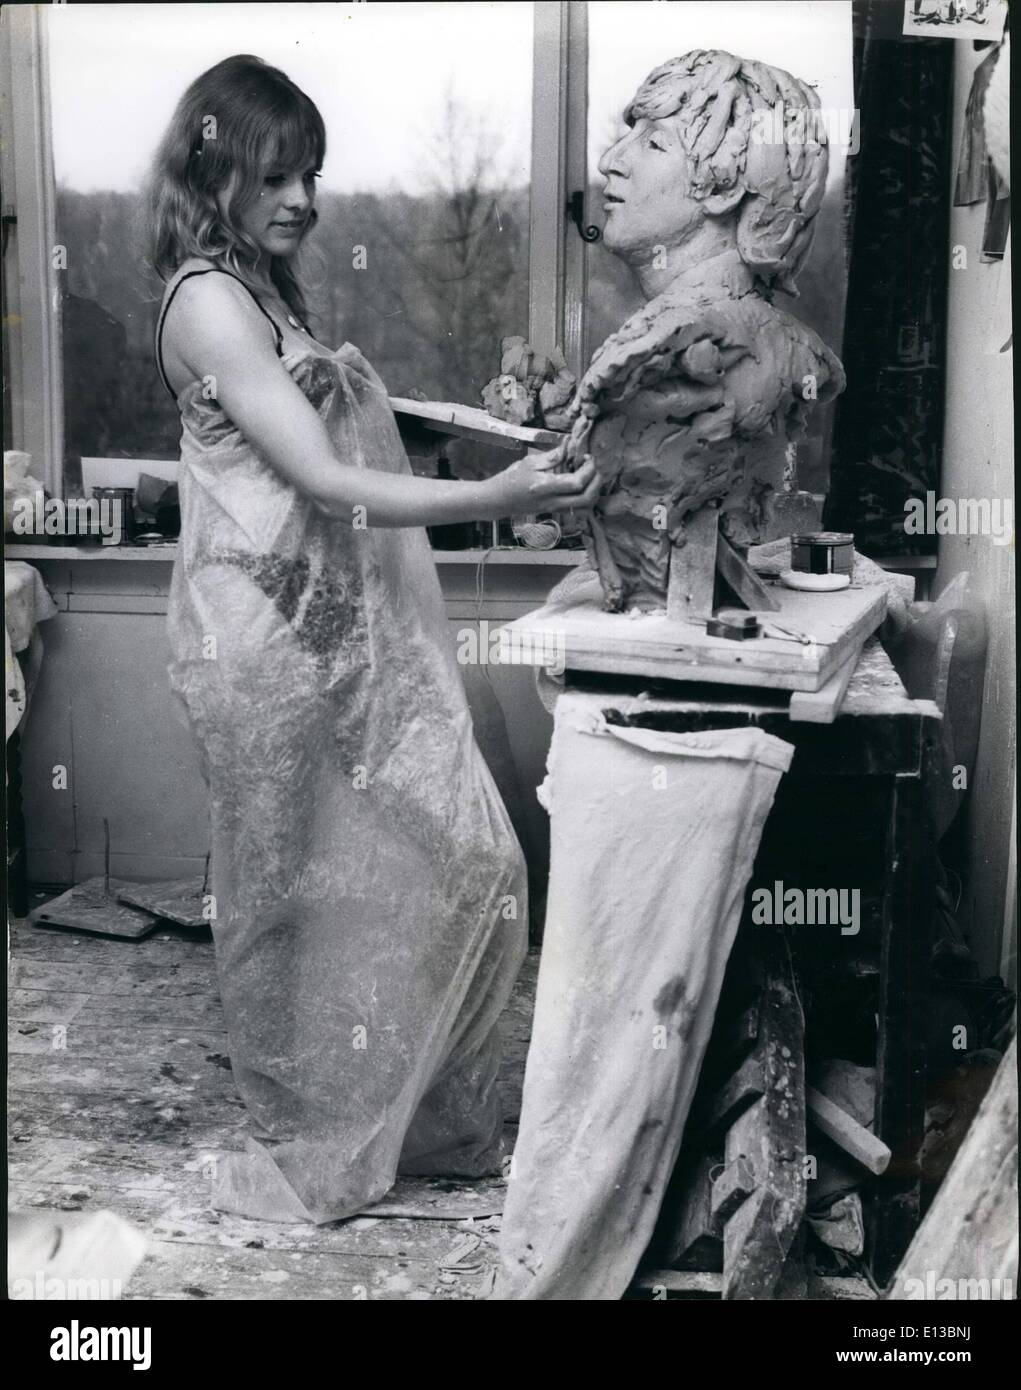 Feb. 29, 2012 - Working in clay is dusty work- hence the wrapping round sculptress Liz Moore while she works on a bust of Beatle John in her Surrey studio. - Stock Image